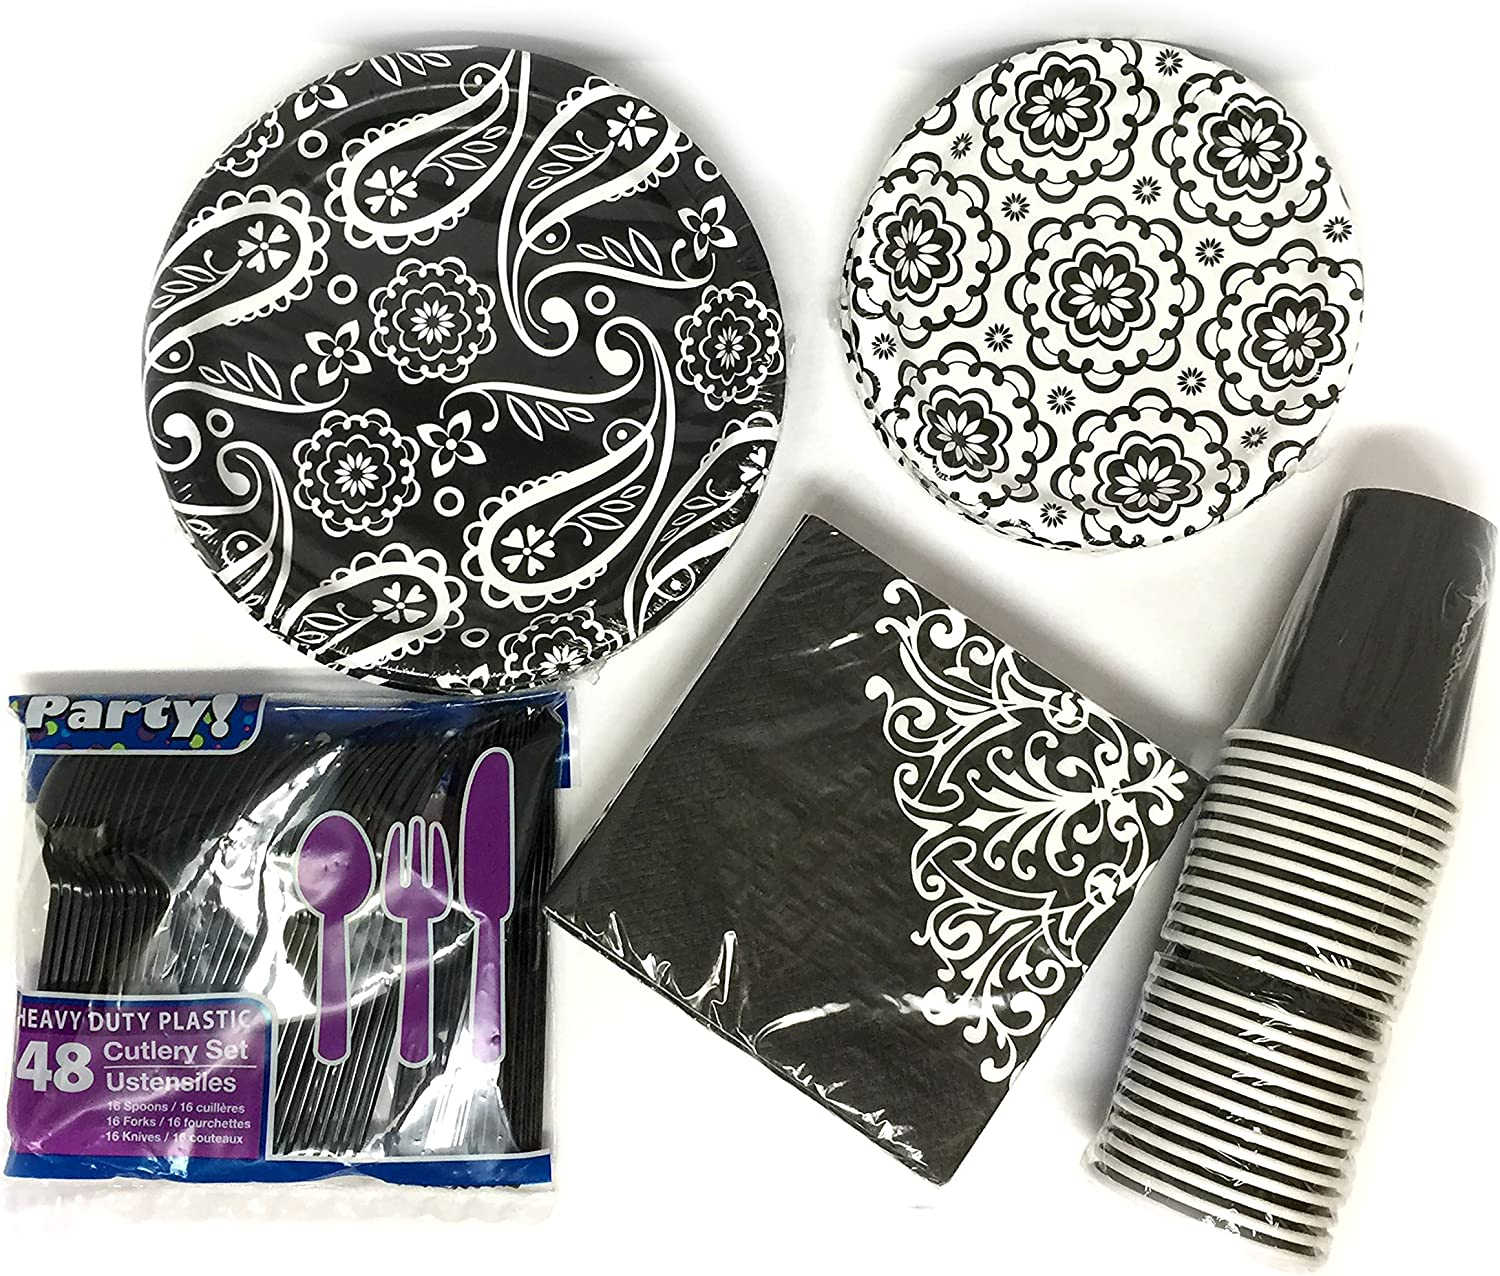 Amazon Com Elegant Black White Ornate Dinner Paper Plates Bundle For 24 5 Items 36 Large 8 75 Plates 40 Small Appetizer 6 8 Plates 40 Napkins 24 Hot Cold Paper Cups And 48 Piece Plastic Tableware Kitchen Dining,Good Plants For Office Spaces